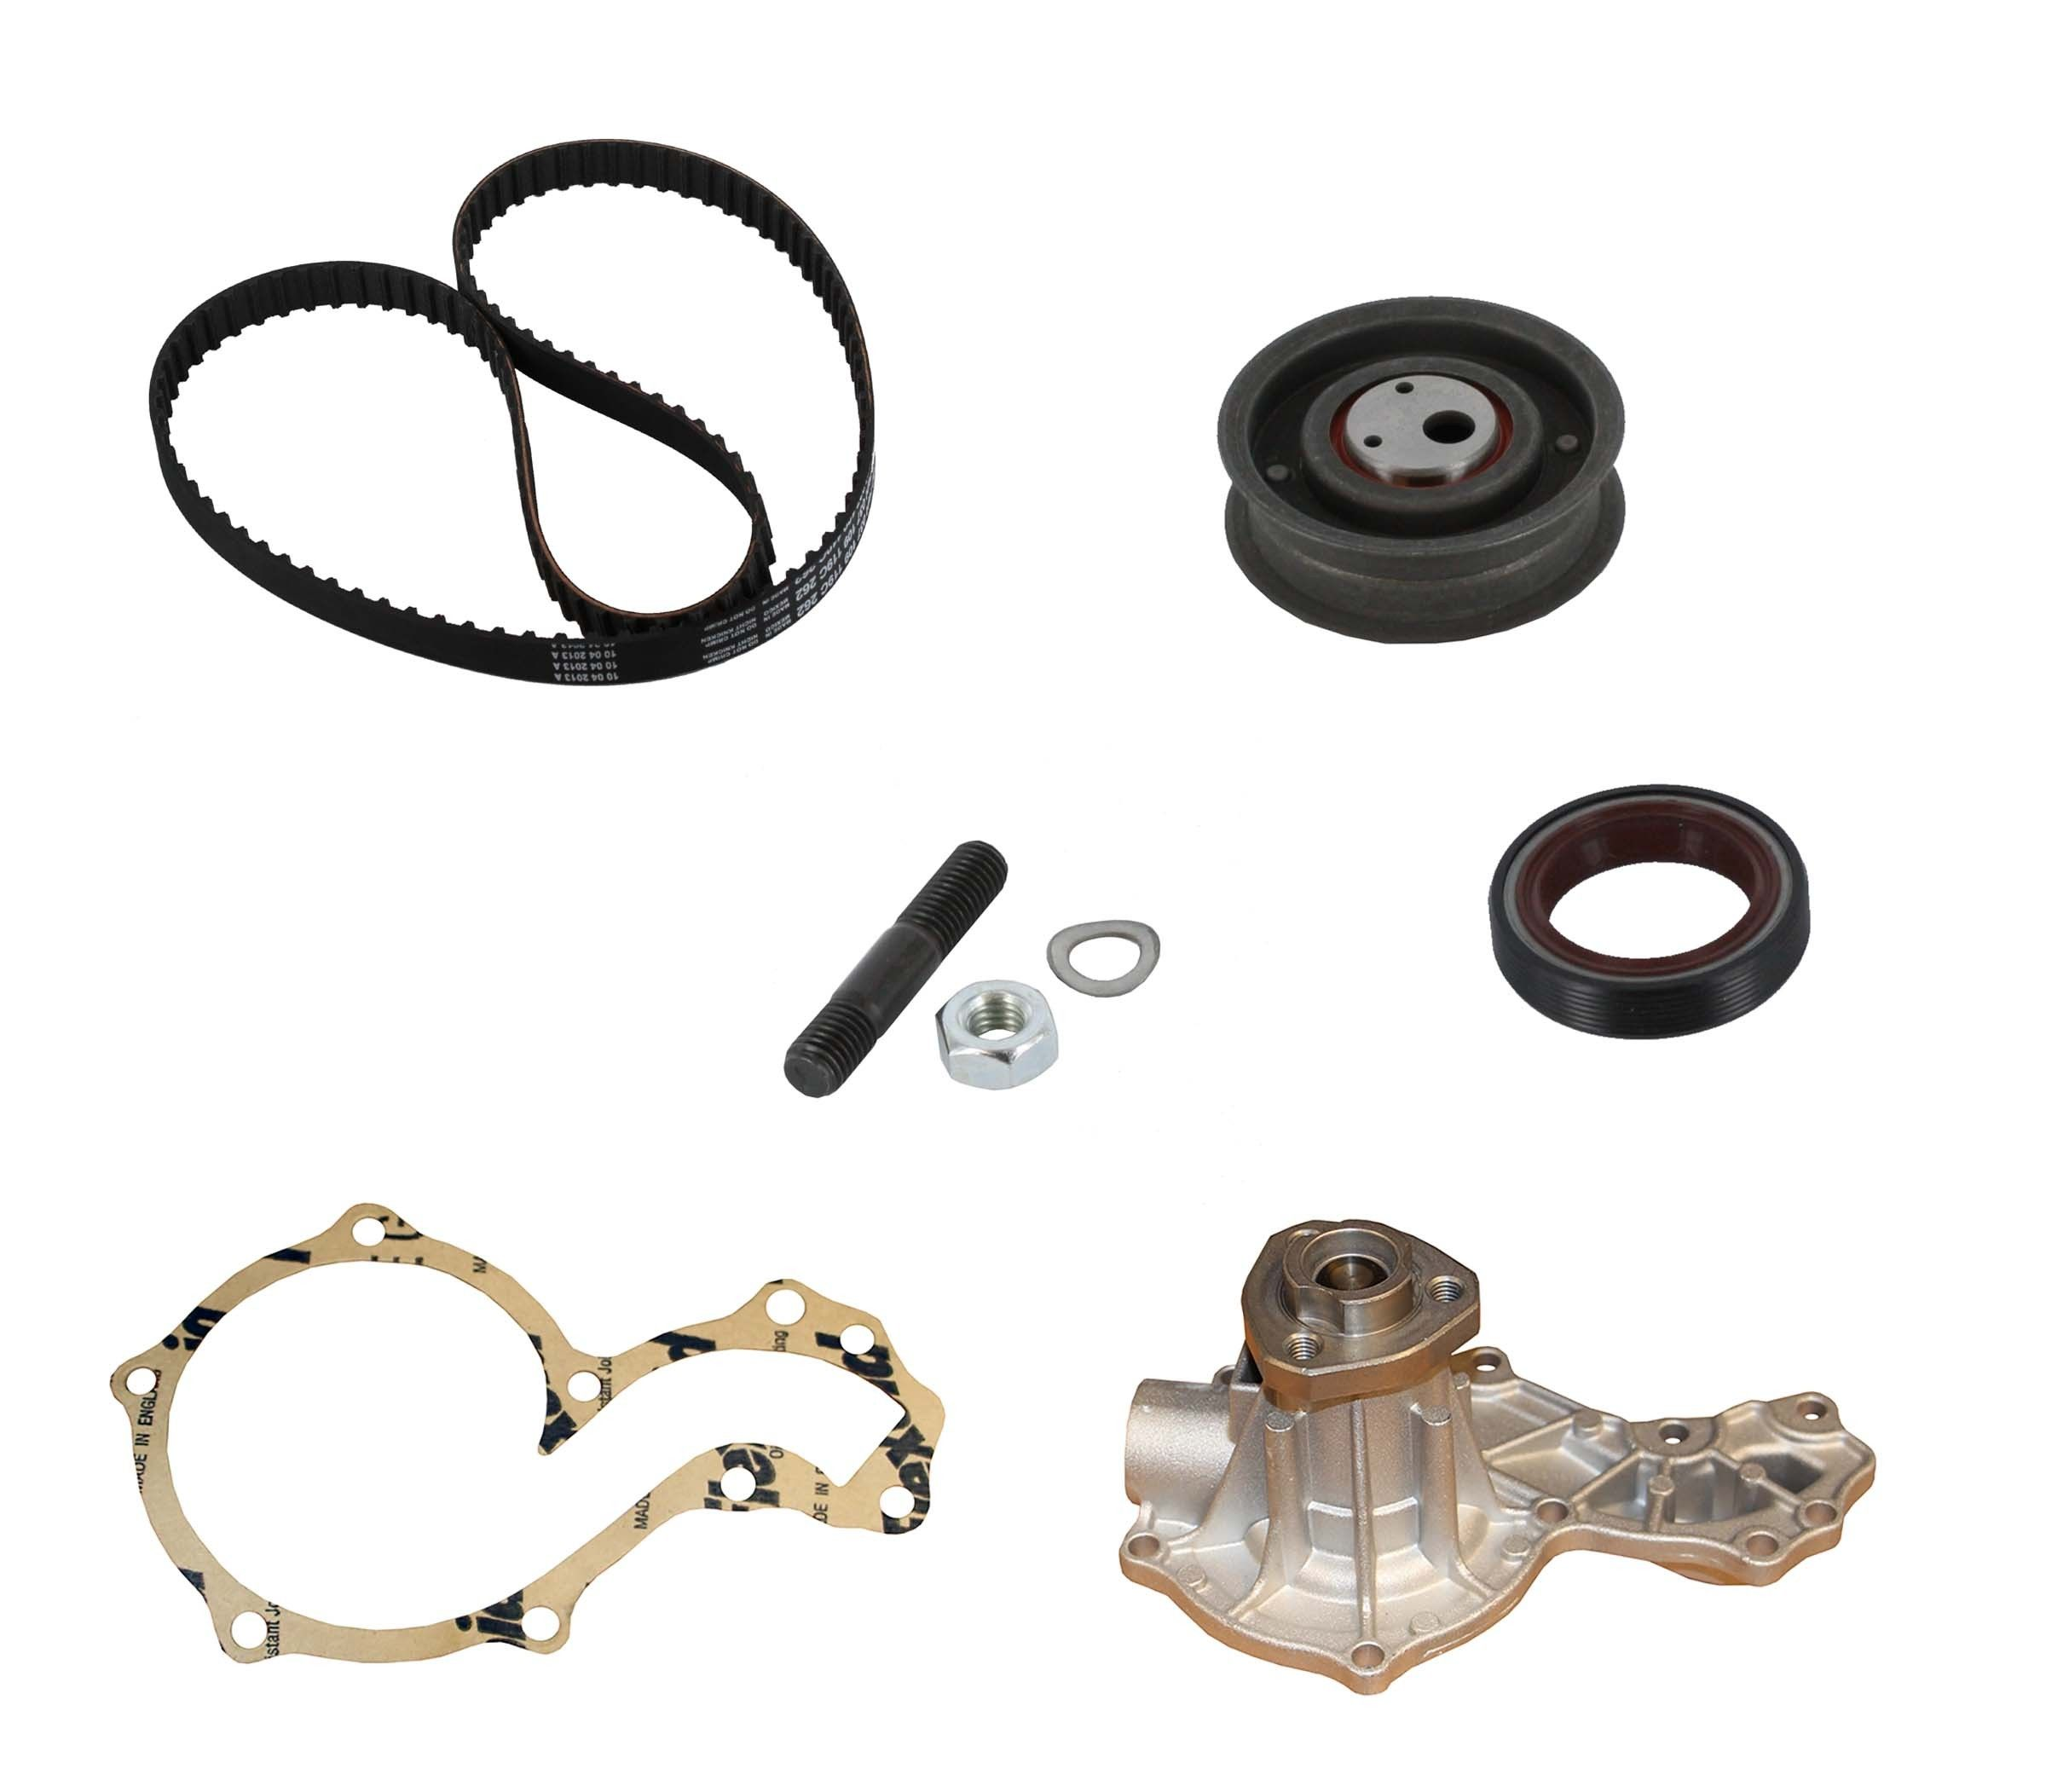 Volkswagen Jetta Engine Timing Belt Kit With Water Pump Replacement Dayco Idler 1996 4 Cyl 20l Crp Pp262lk1 Pro Series Plus Contitech W O Wp Housing Interference Eng